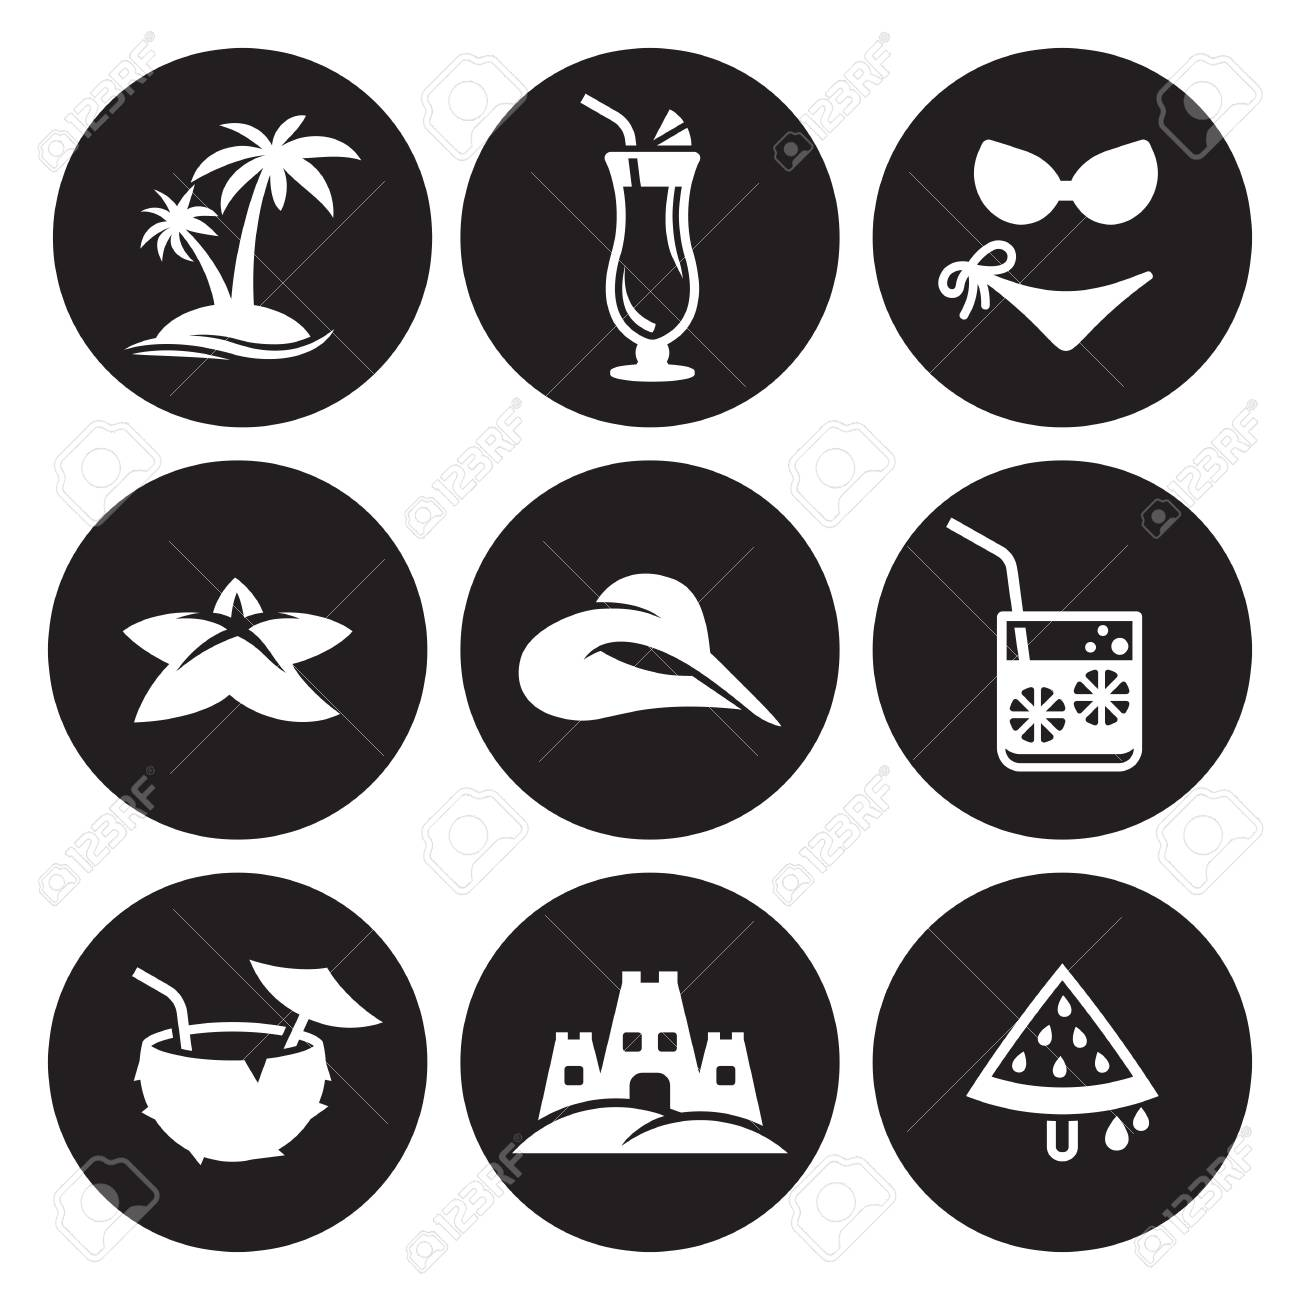 summer icons object icons set in black background set royalty free cliparts vectors and stock illustration image 93410349 summer icons object icons set in black background set